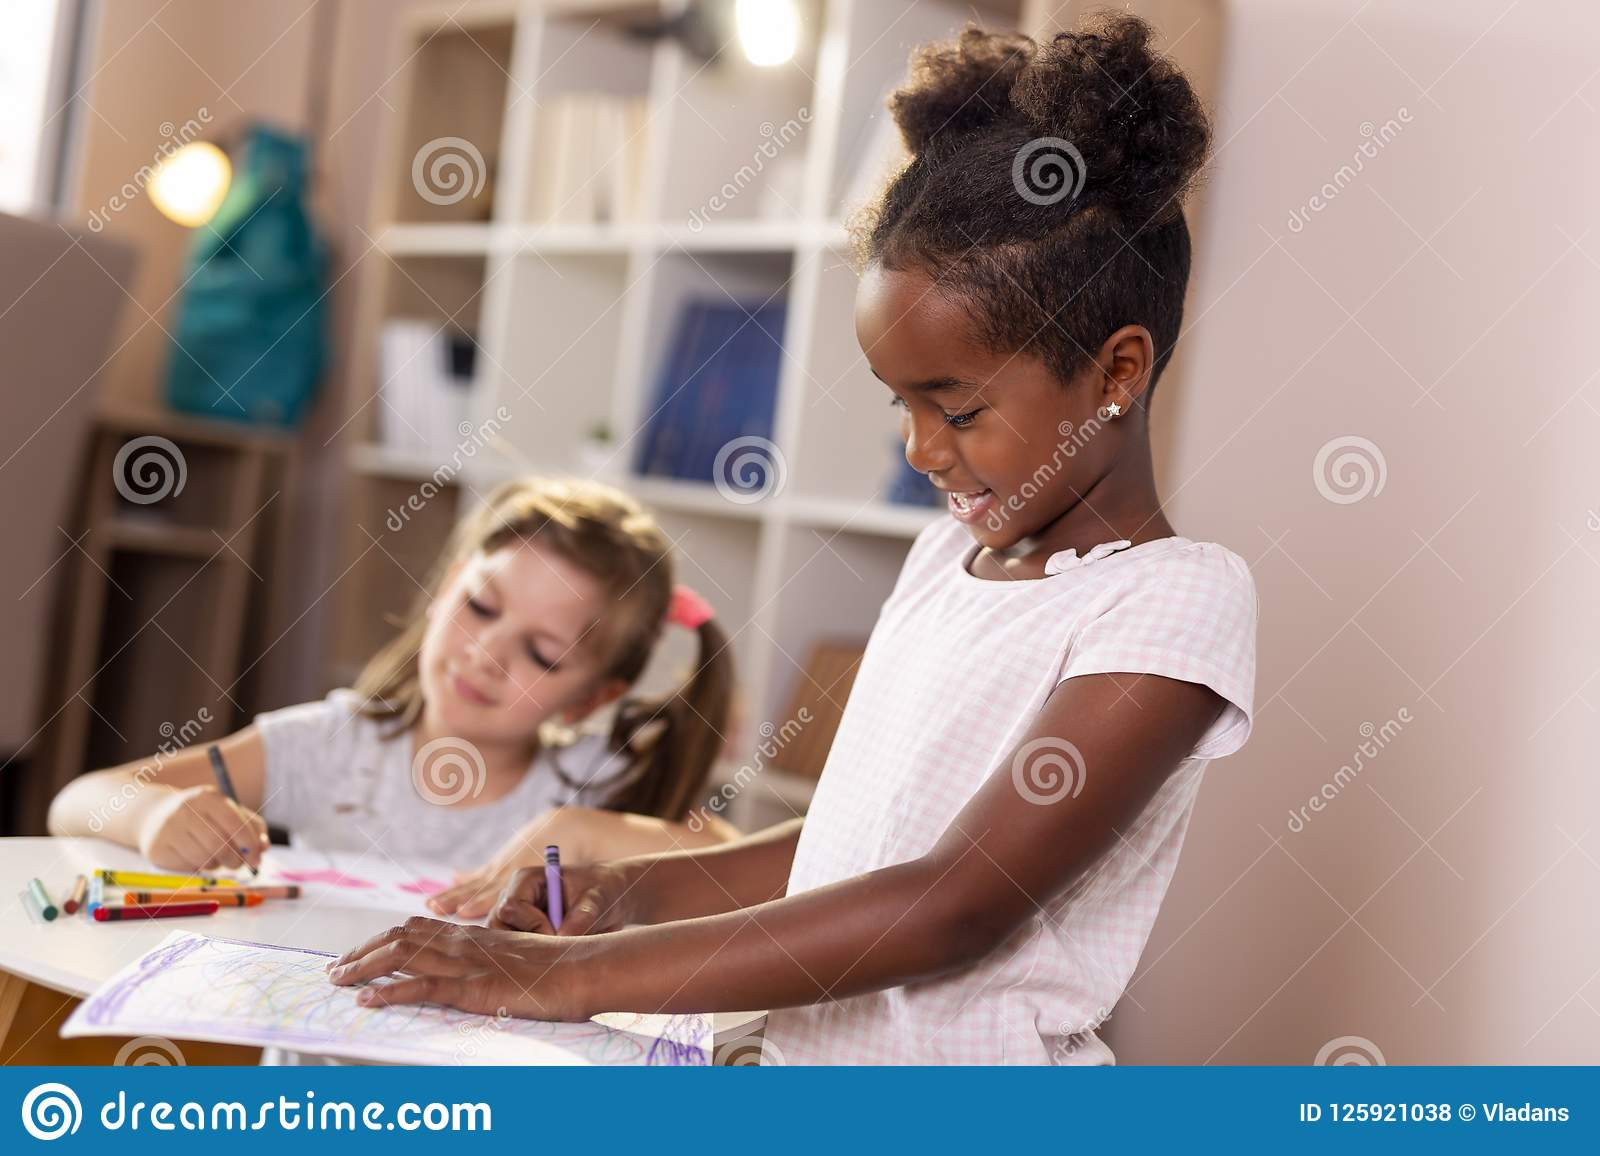 Girls drawing with crayons